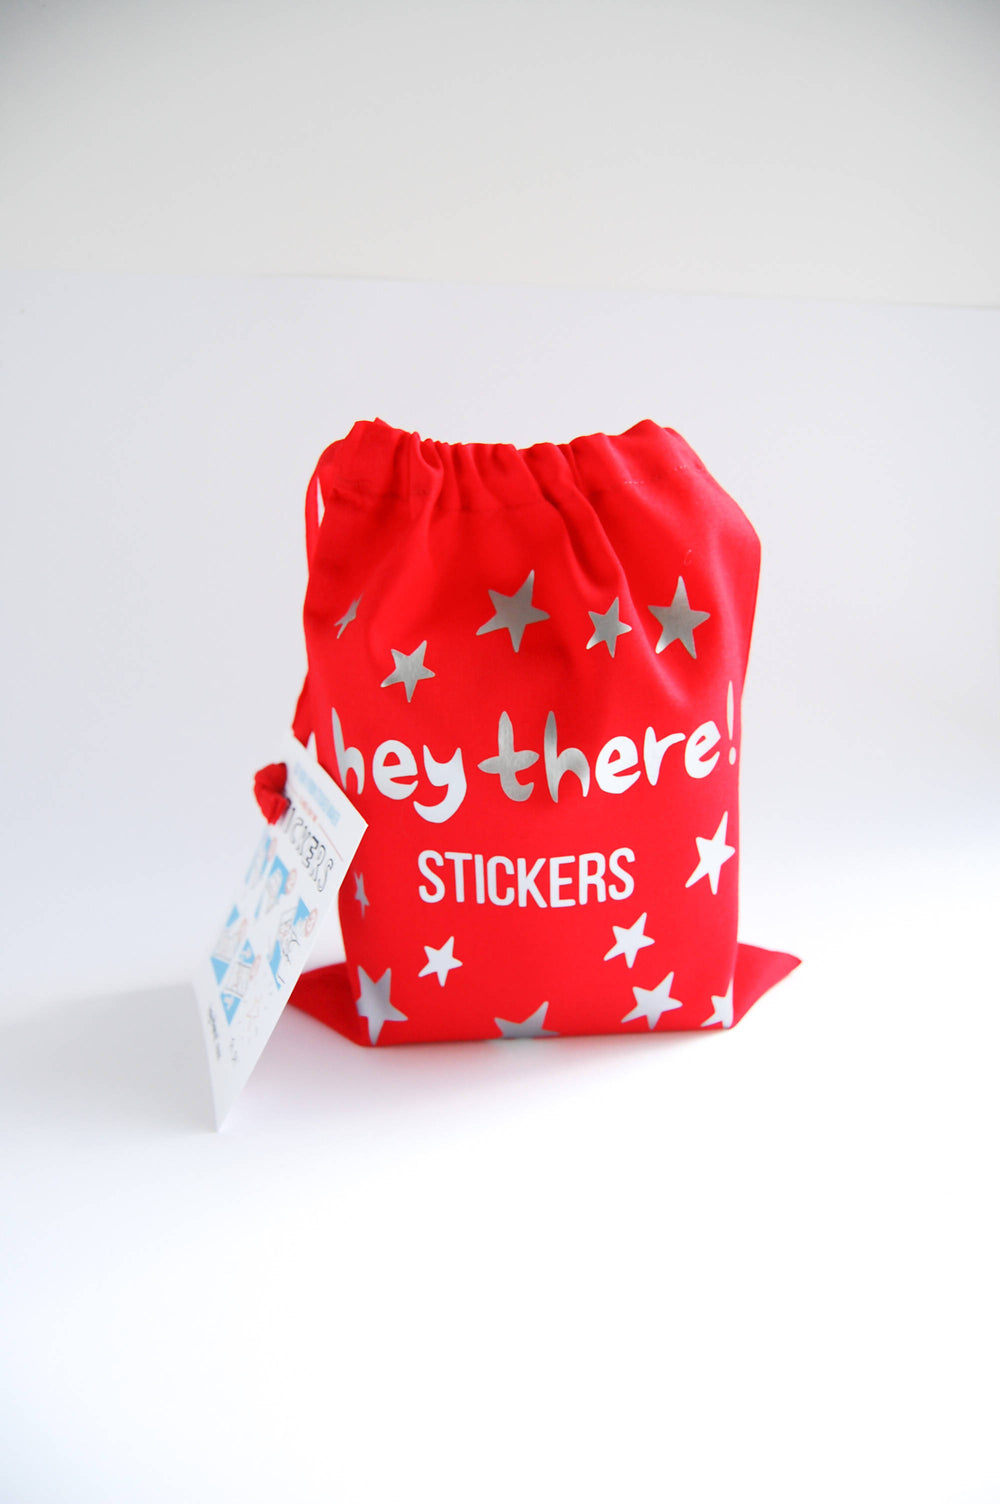 Red Sticker Maker Kit